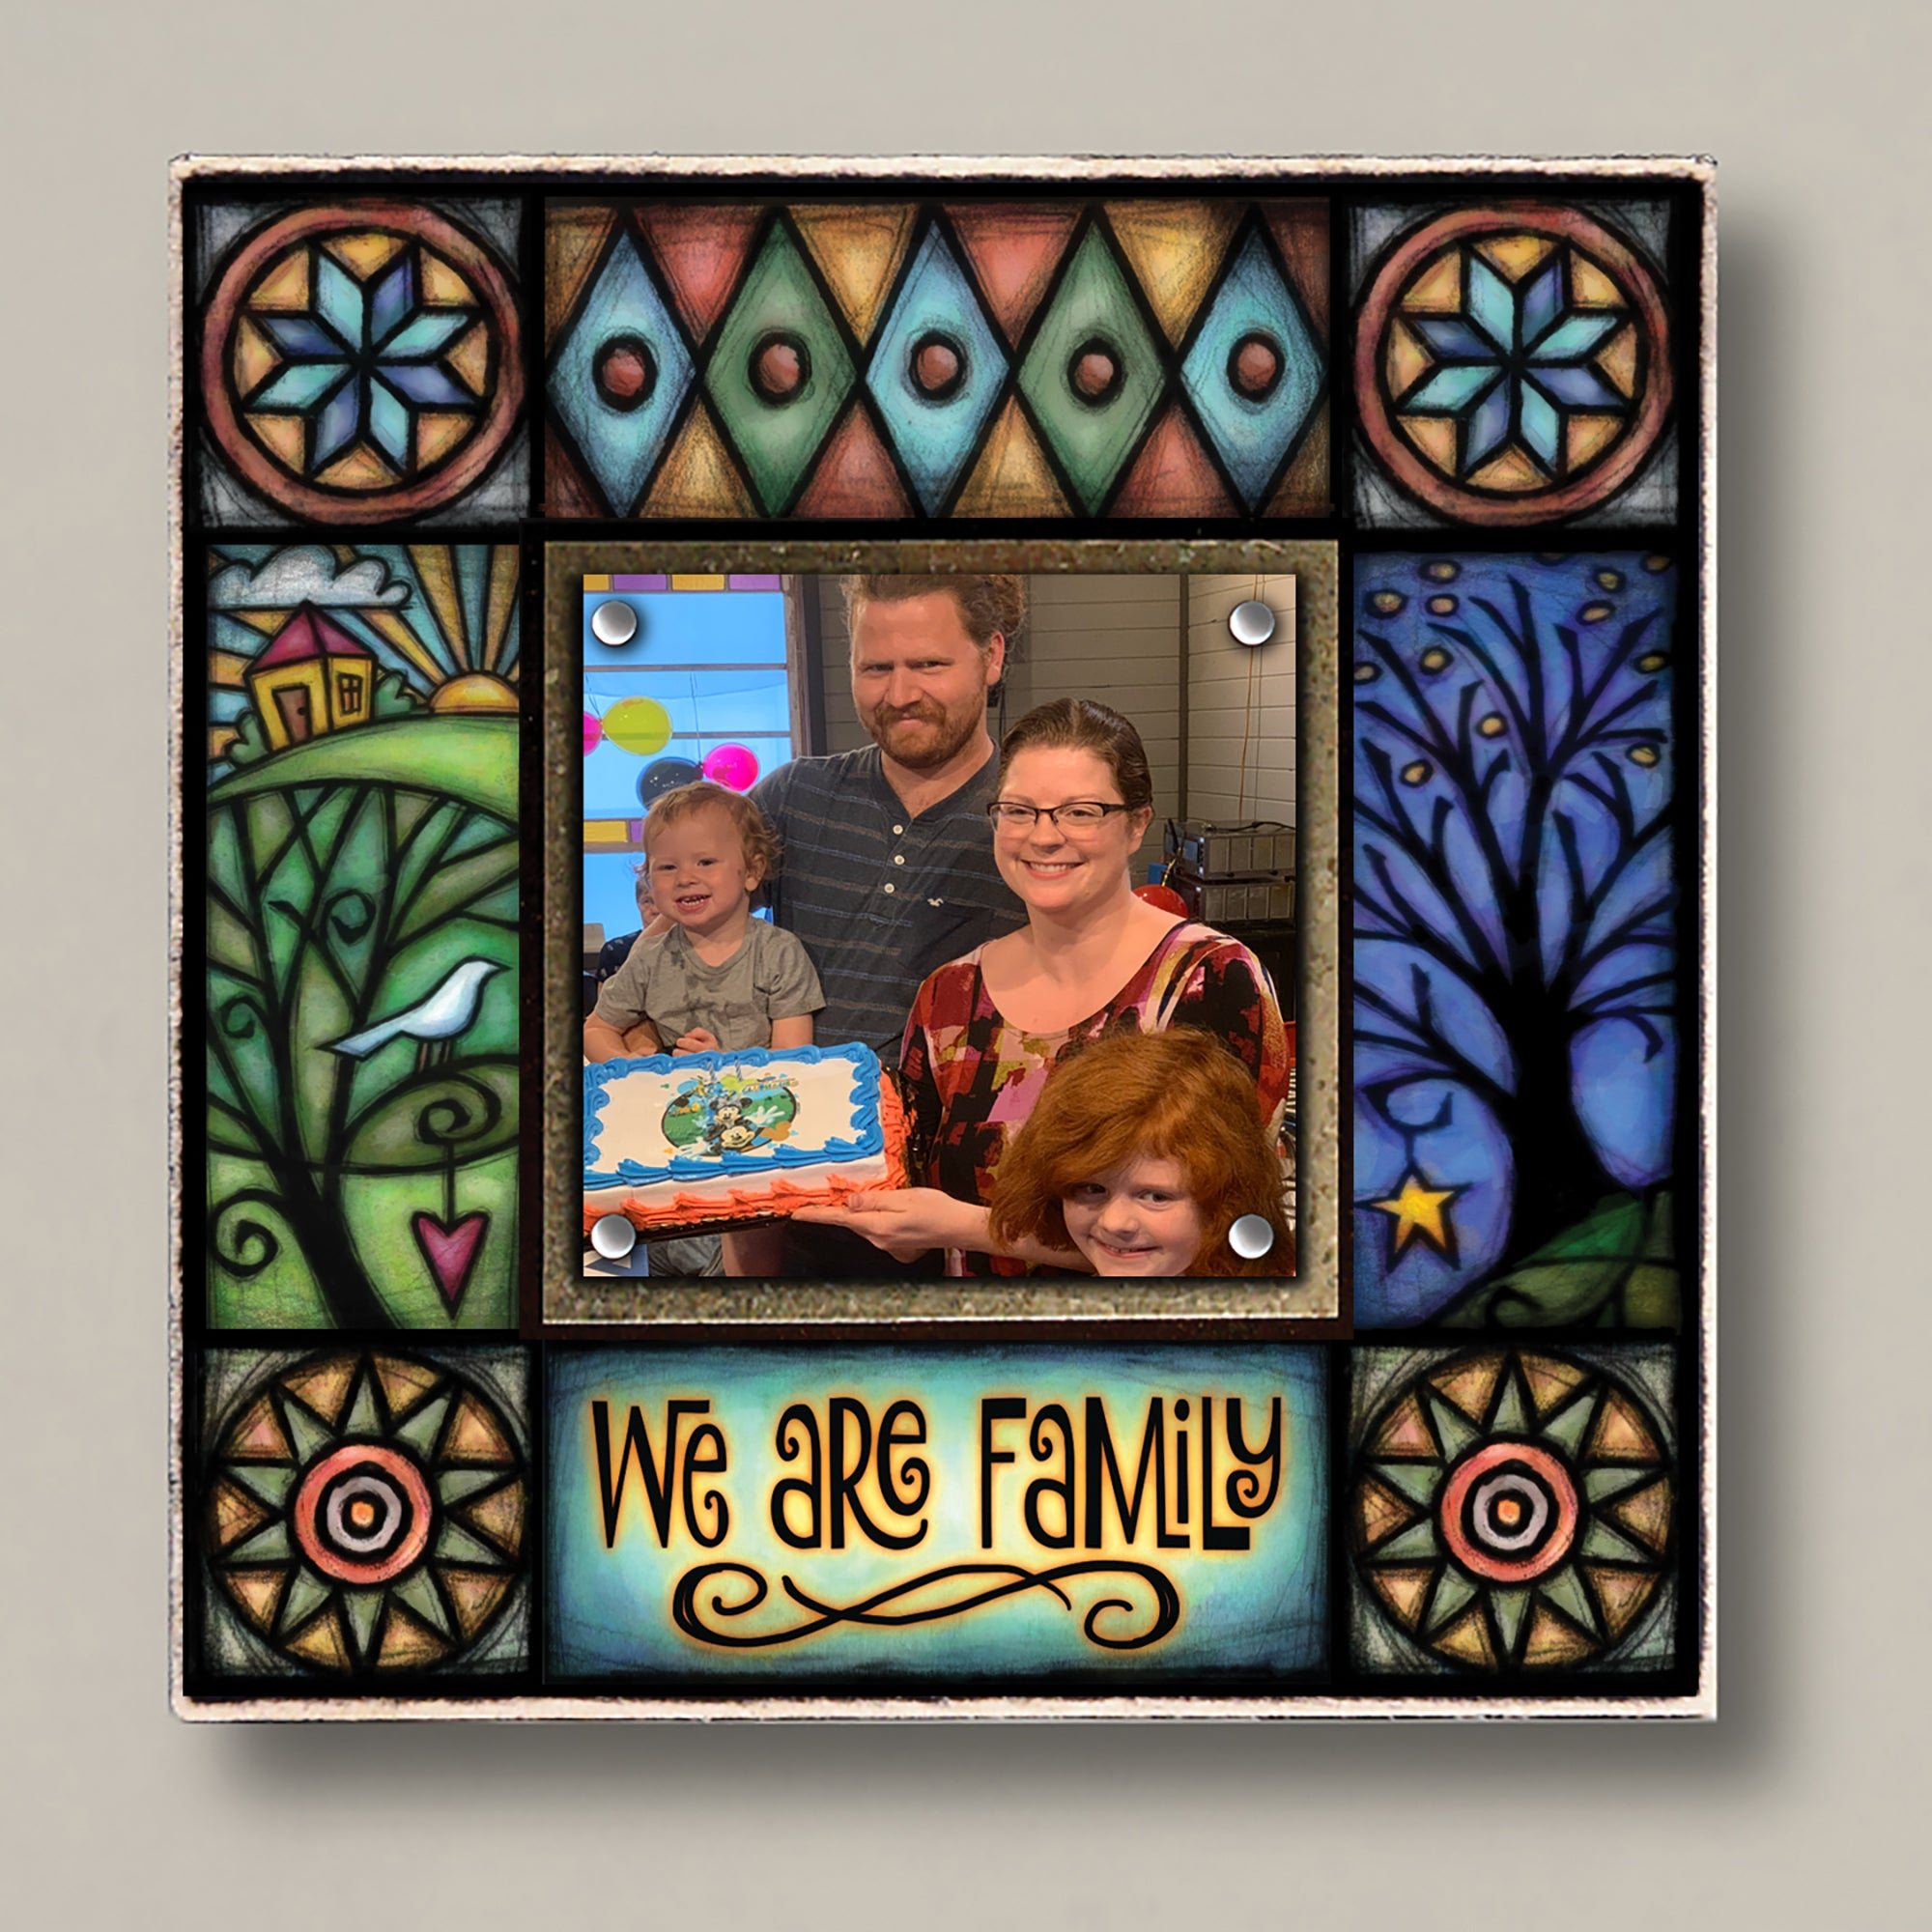 We are Family Small Frame